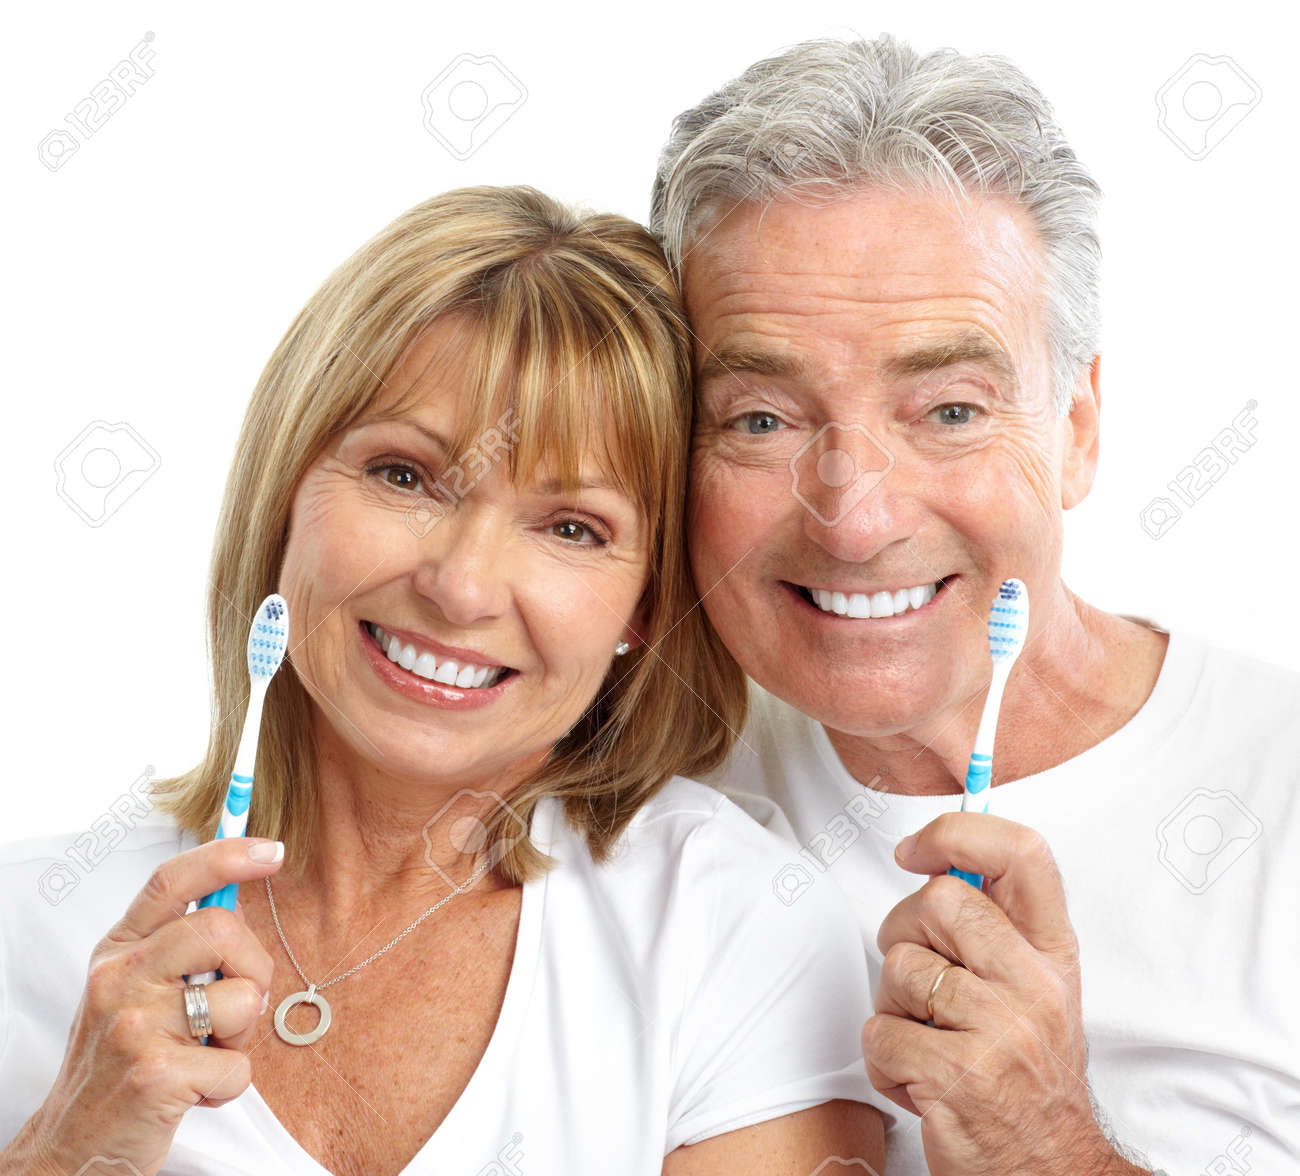 Happy seniors couple with toothbrushes. Healthy teeth. Isolated over white background Stock Photo - 7231944